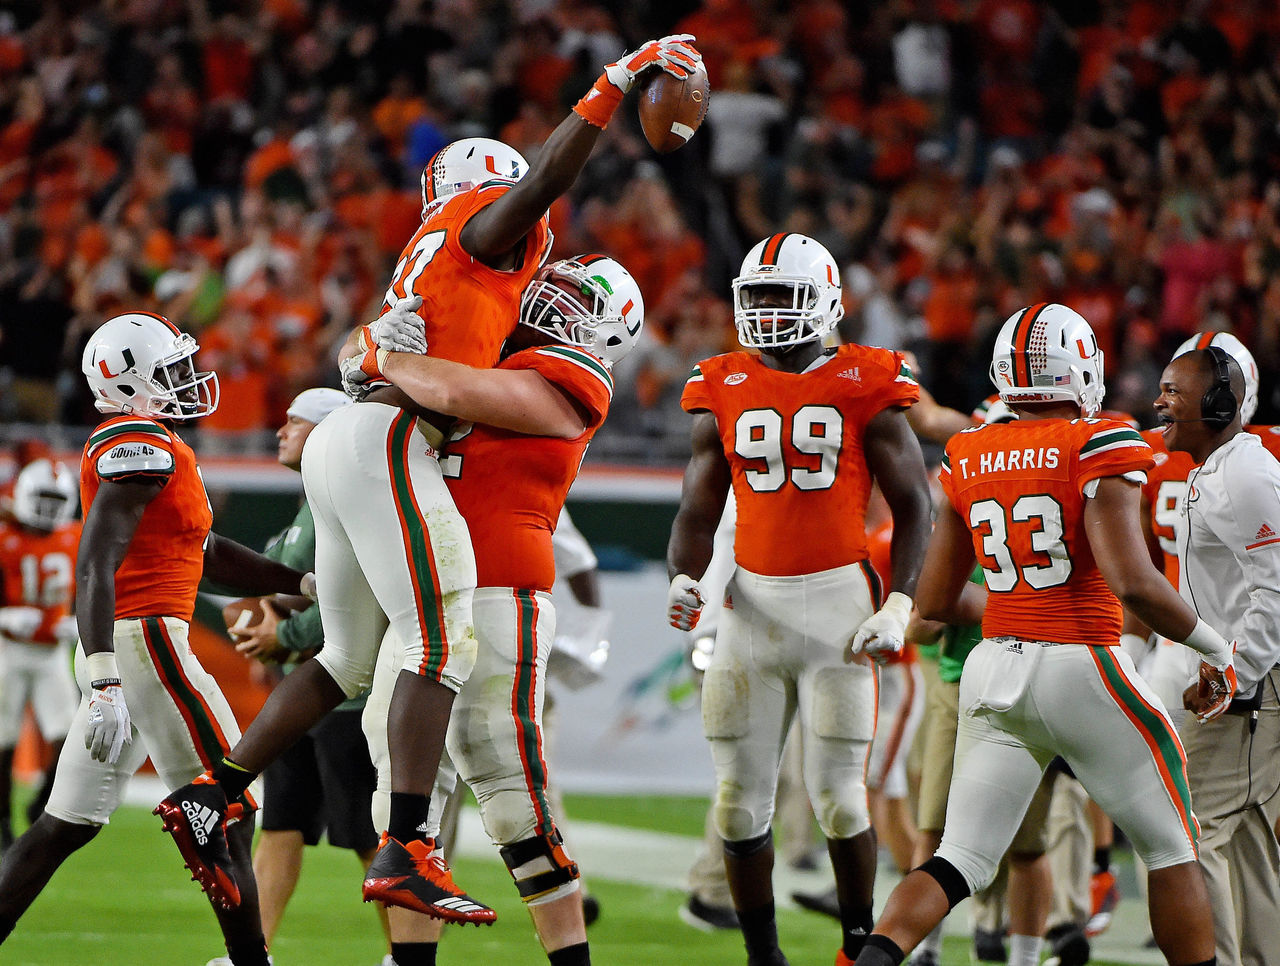 Cropped 2017 11 12t050947z 706788278 nocid rtrmadp 3 ncaa football notre dame at miami